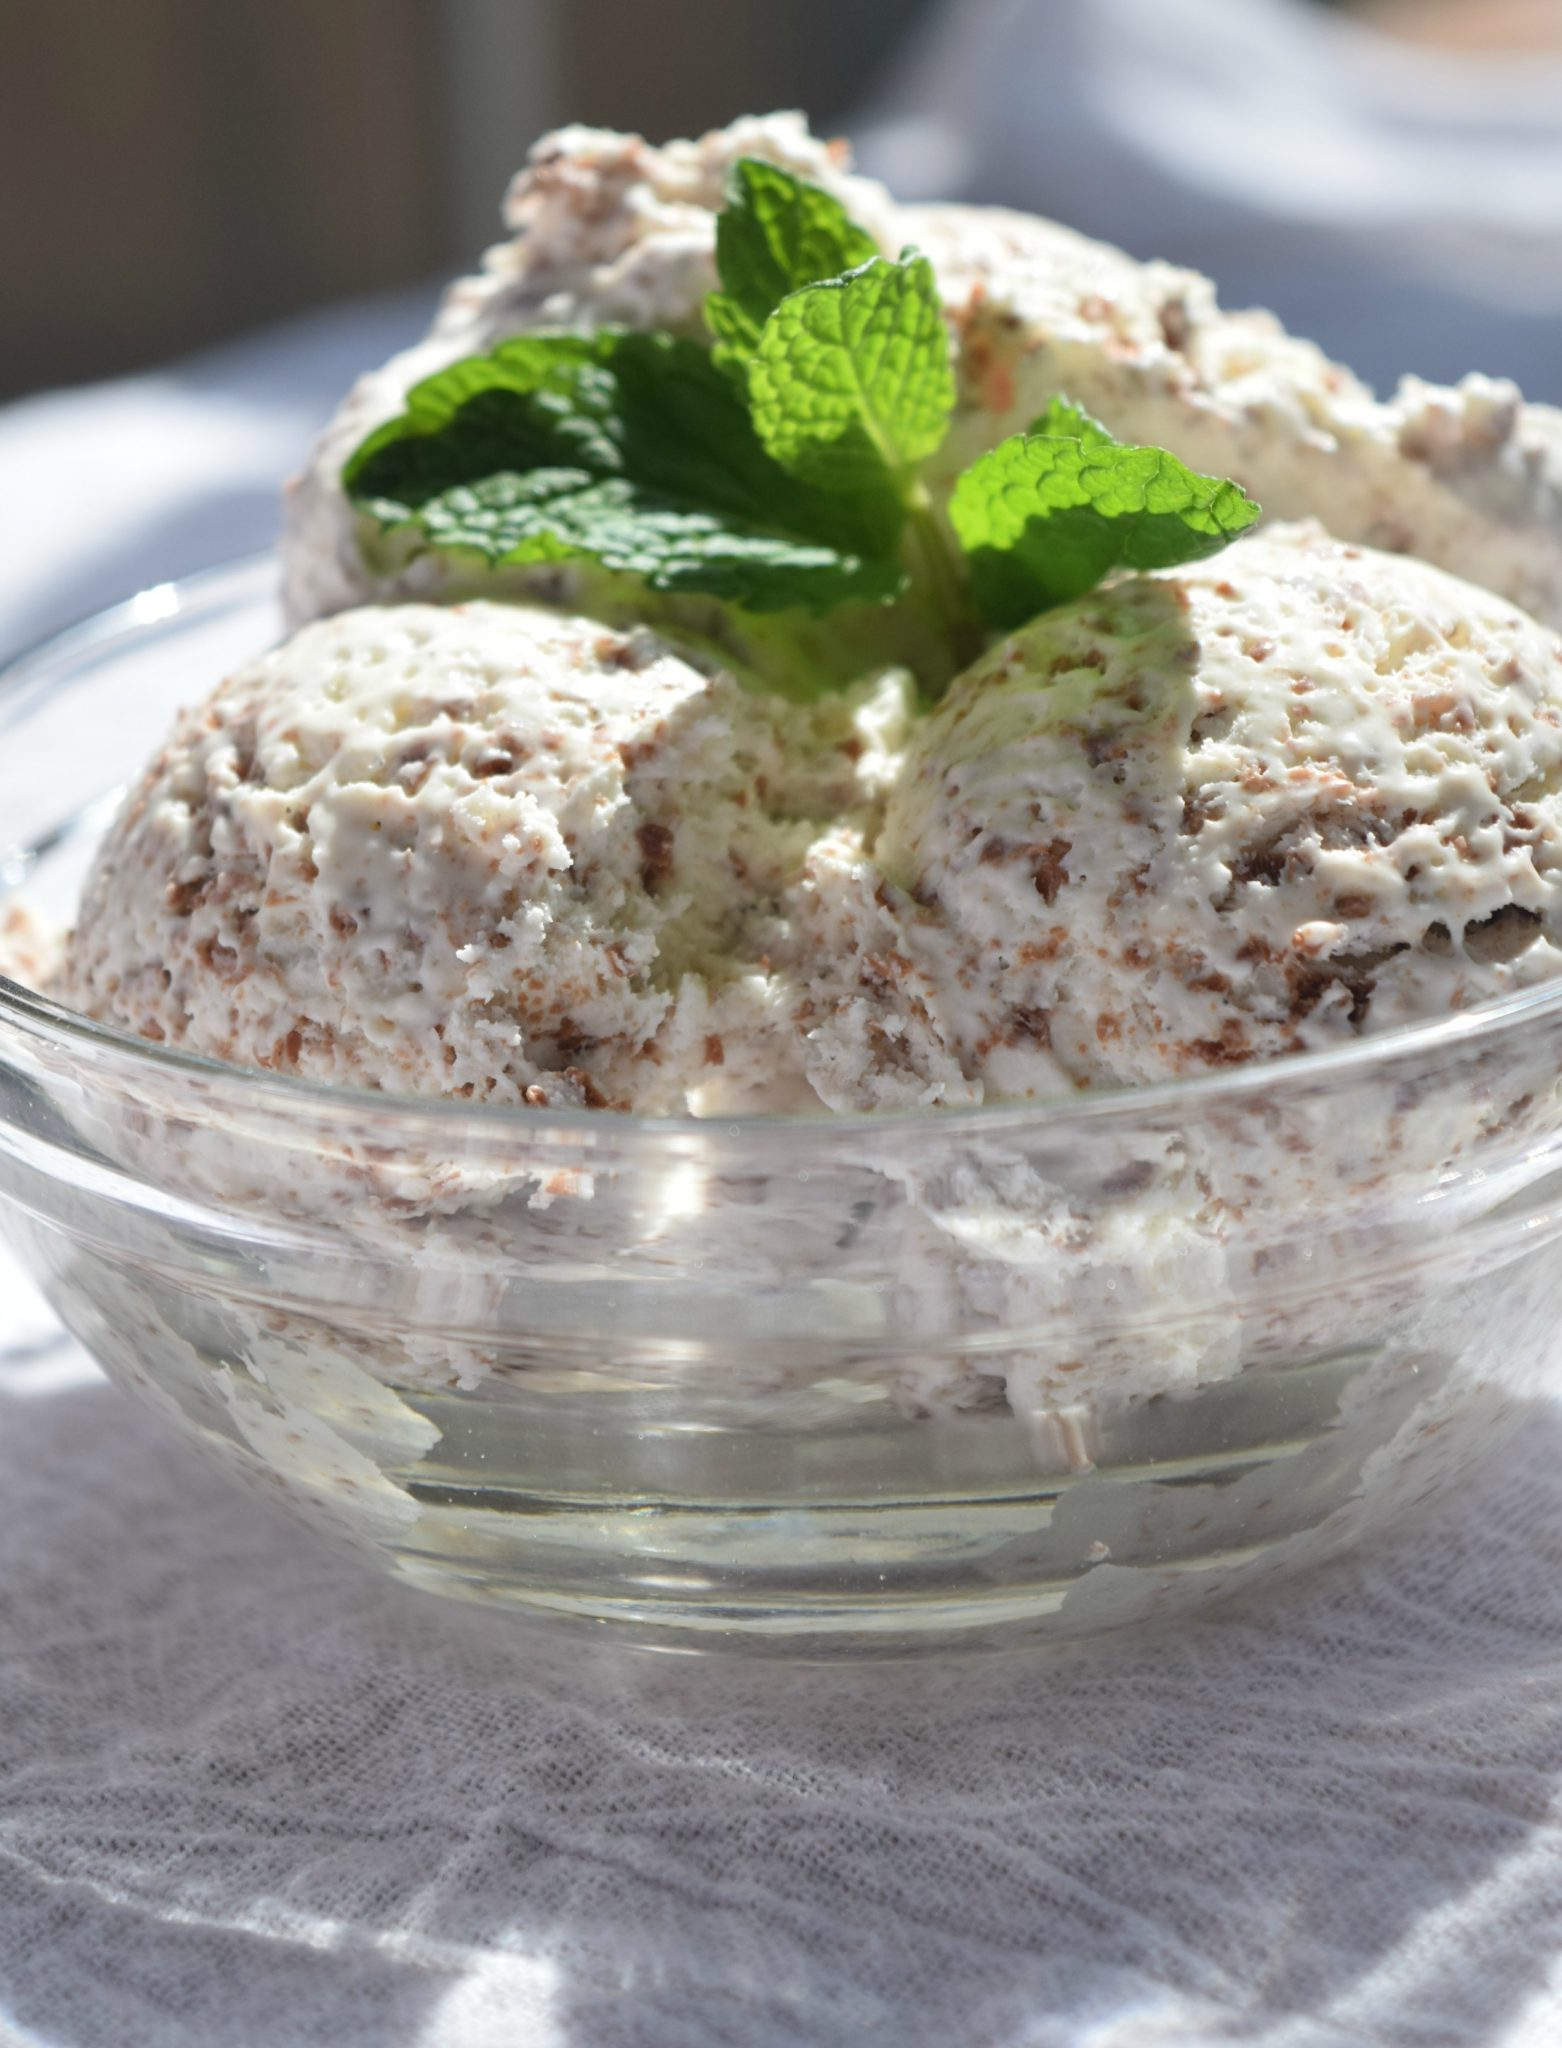 Mint Chocolate Chip Ice Cream - No-Churn